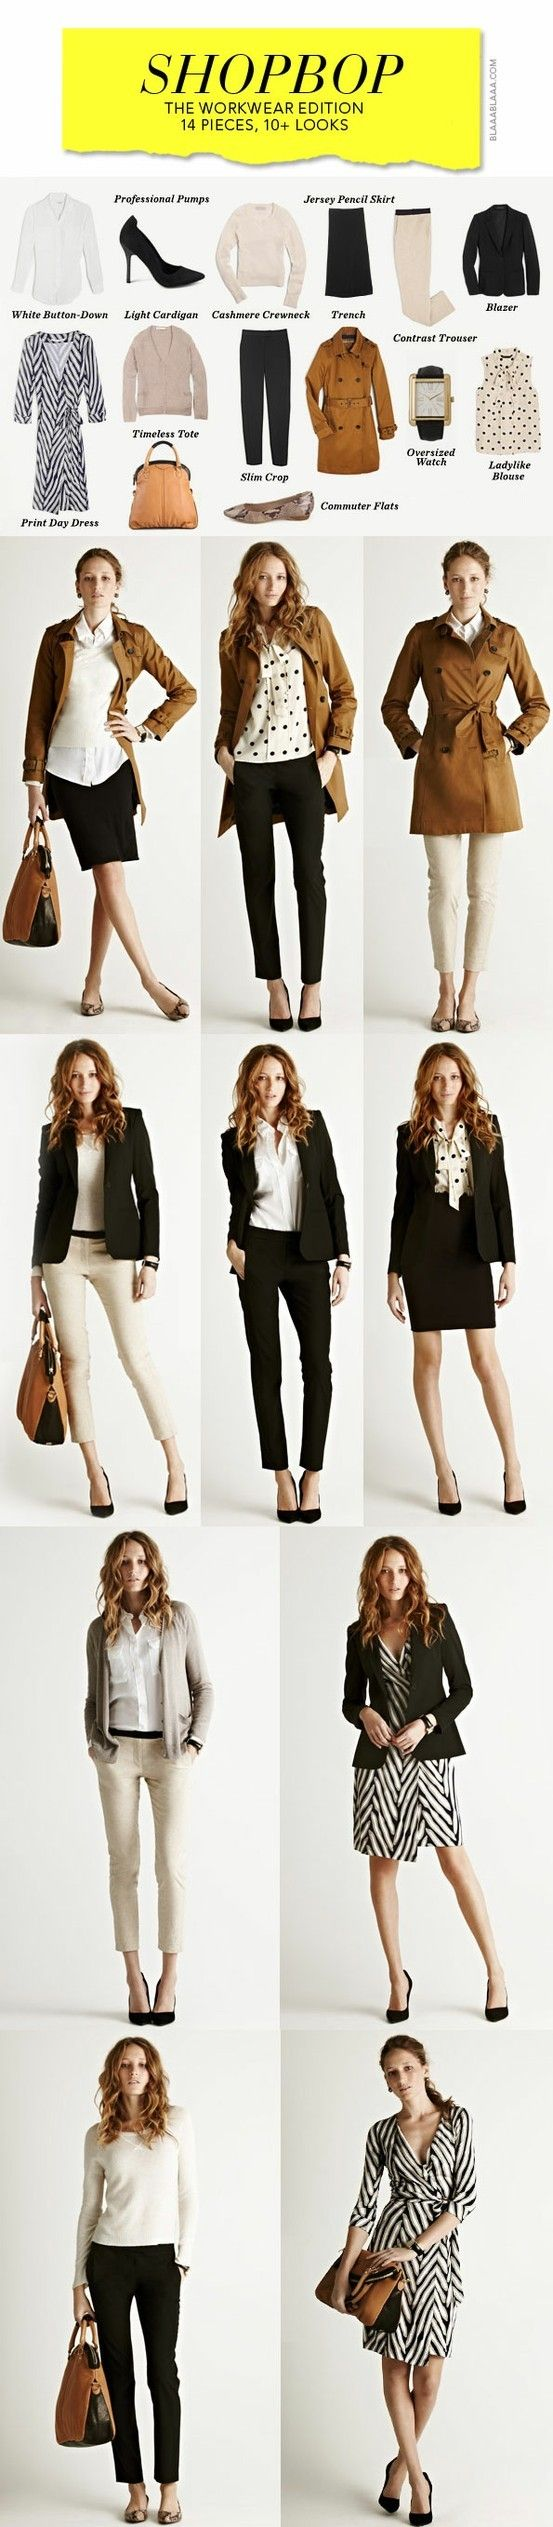 Image detail for -... and Pearls - Womens Work Wear and Office Clothing for Women                                                                                                                                                     More                                                                                                                                                                                 More